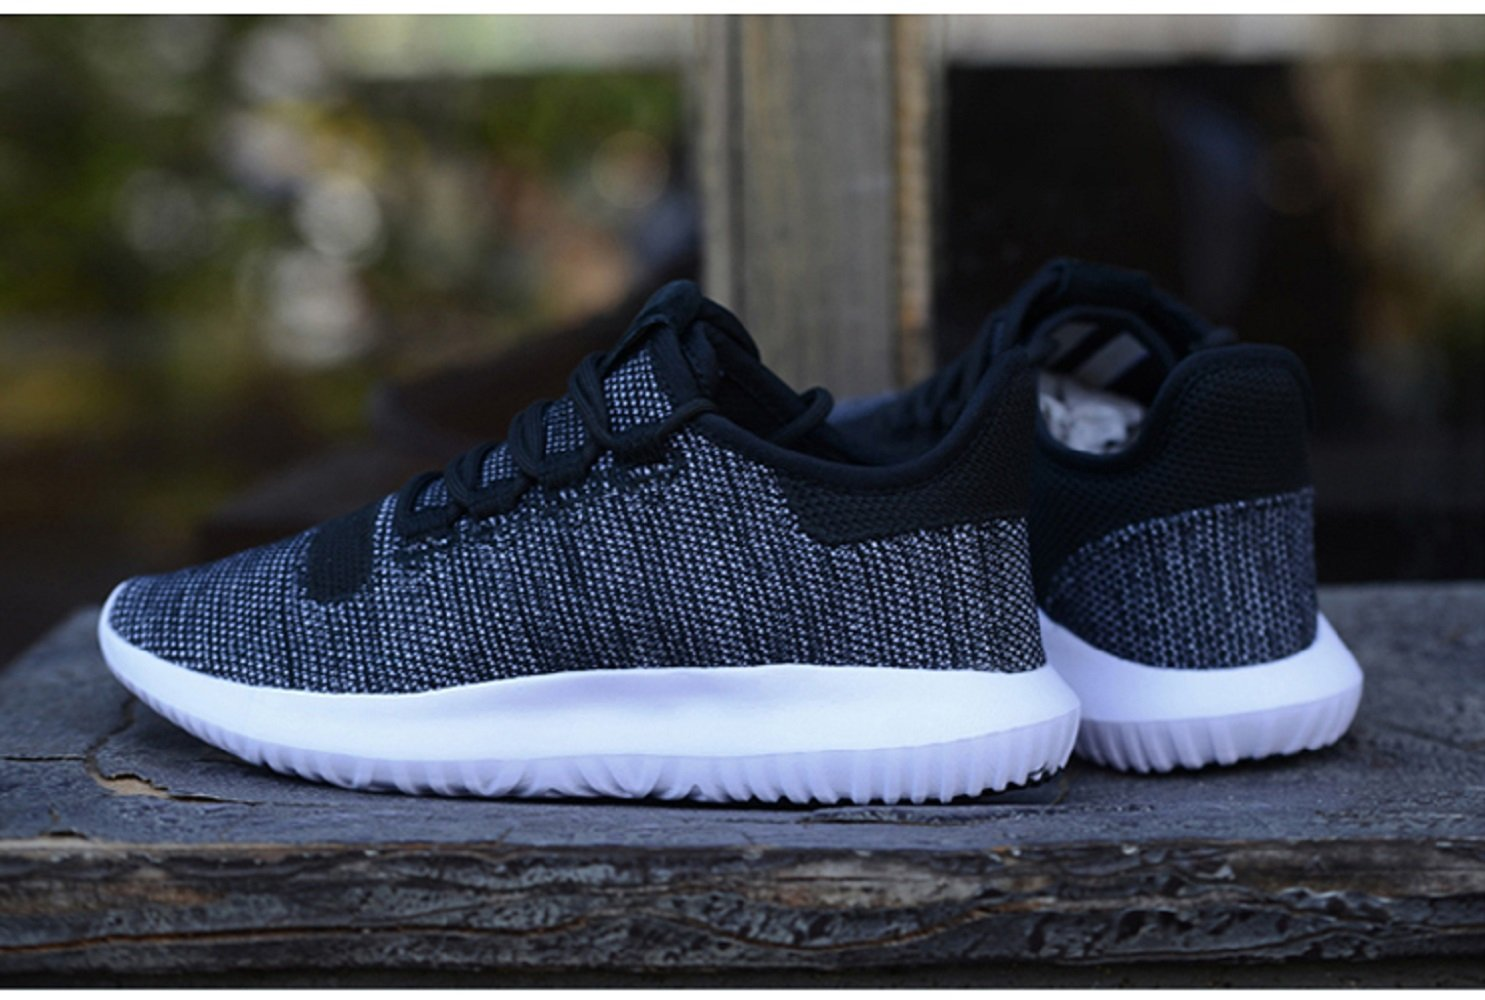 GAOAG Sneakers Running Cushioning Lightweight Breathable Casual Shoes Unisex by GAOAG (Image #2)